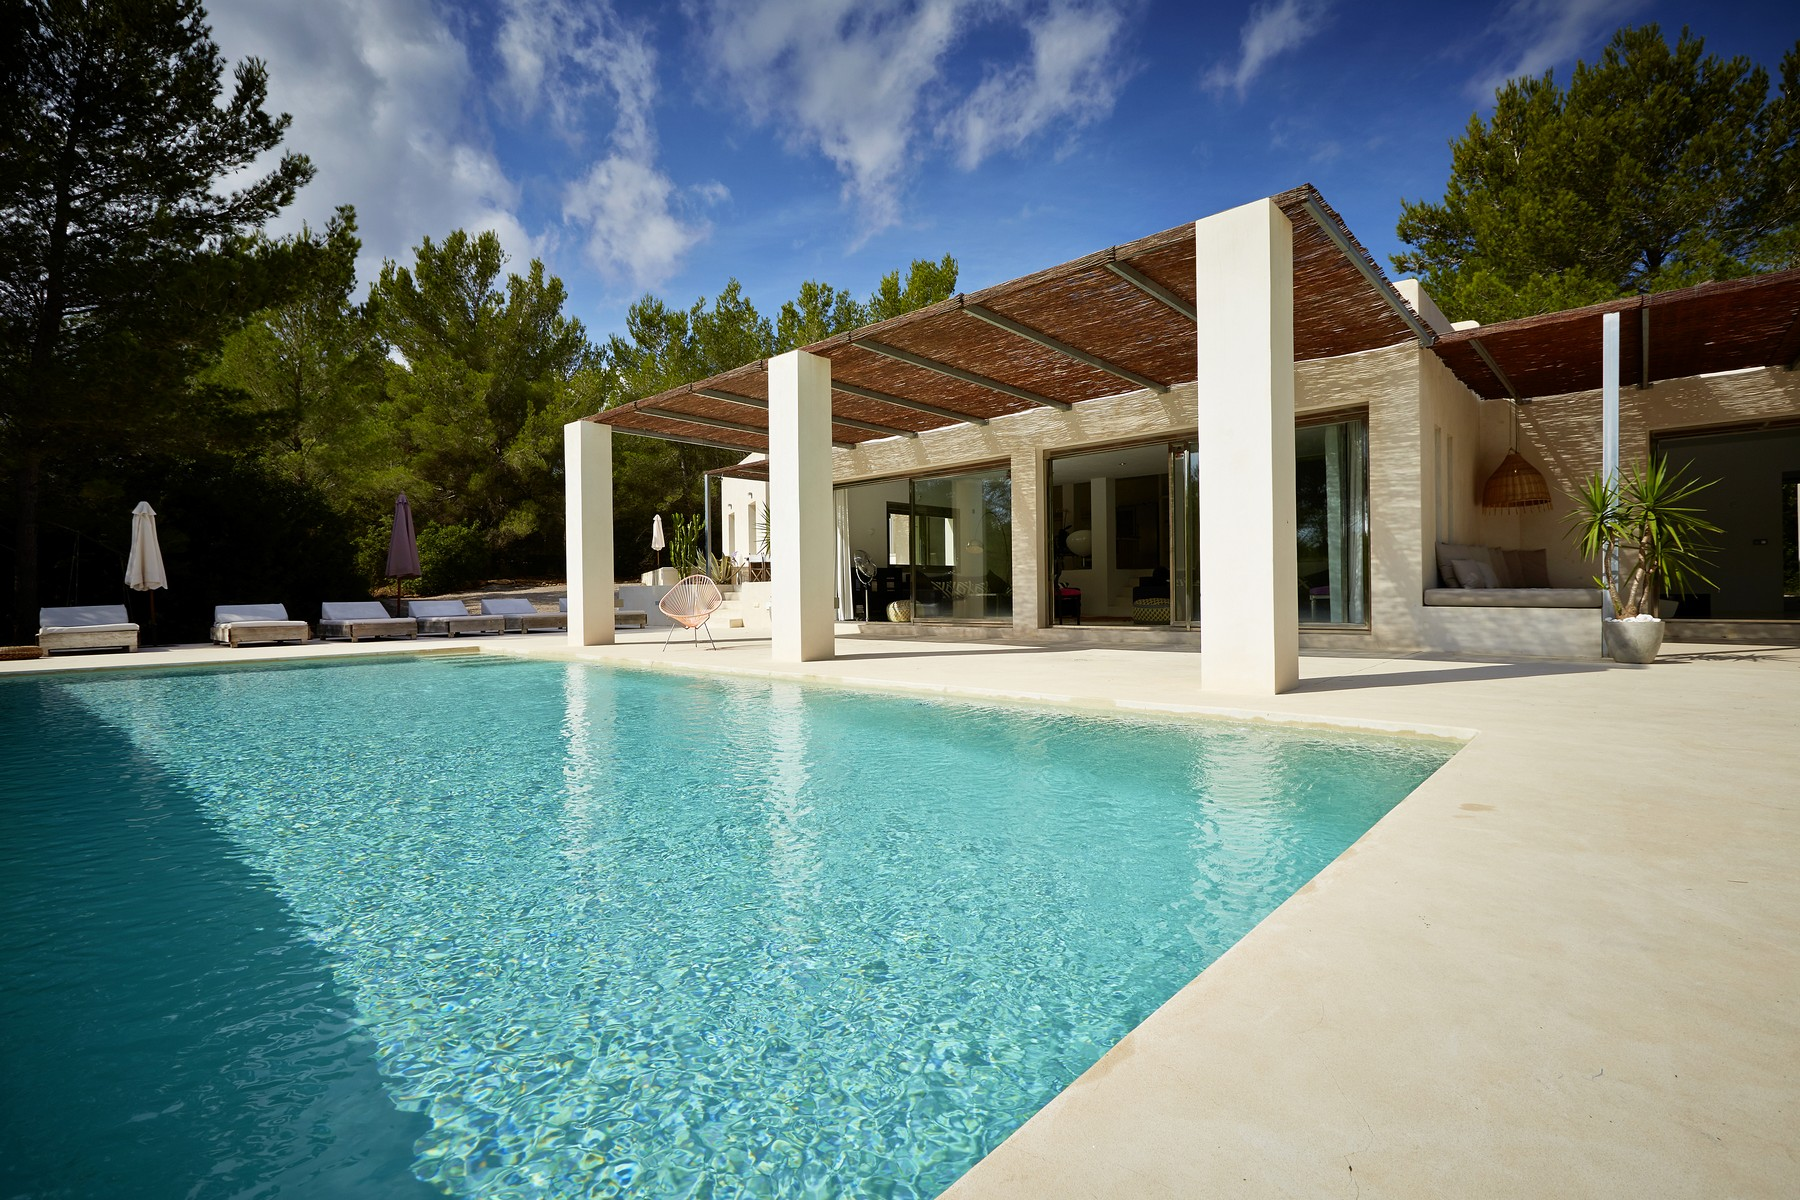 Single Family Home for Sale at Rustic Style Villa In Porroig San Jose, Ibiza, 07830 Spain